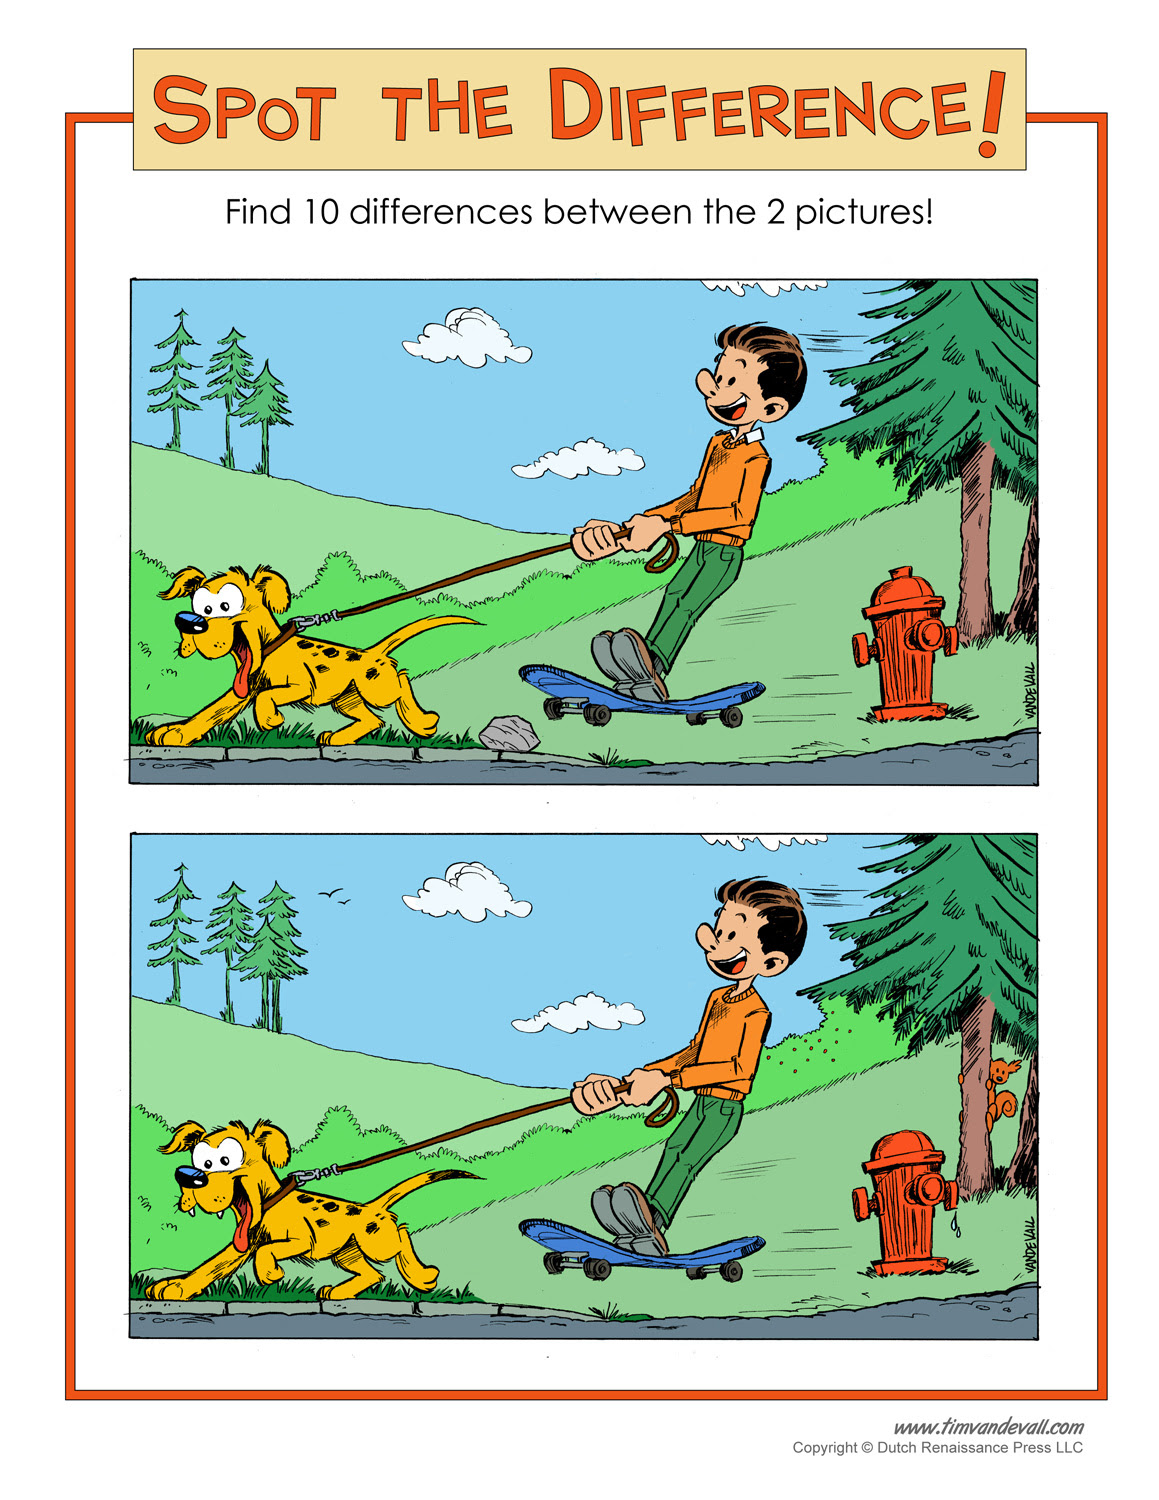 Spot the Difference Printable - Tim van de Vall